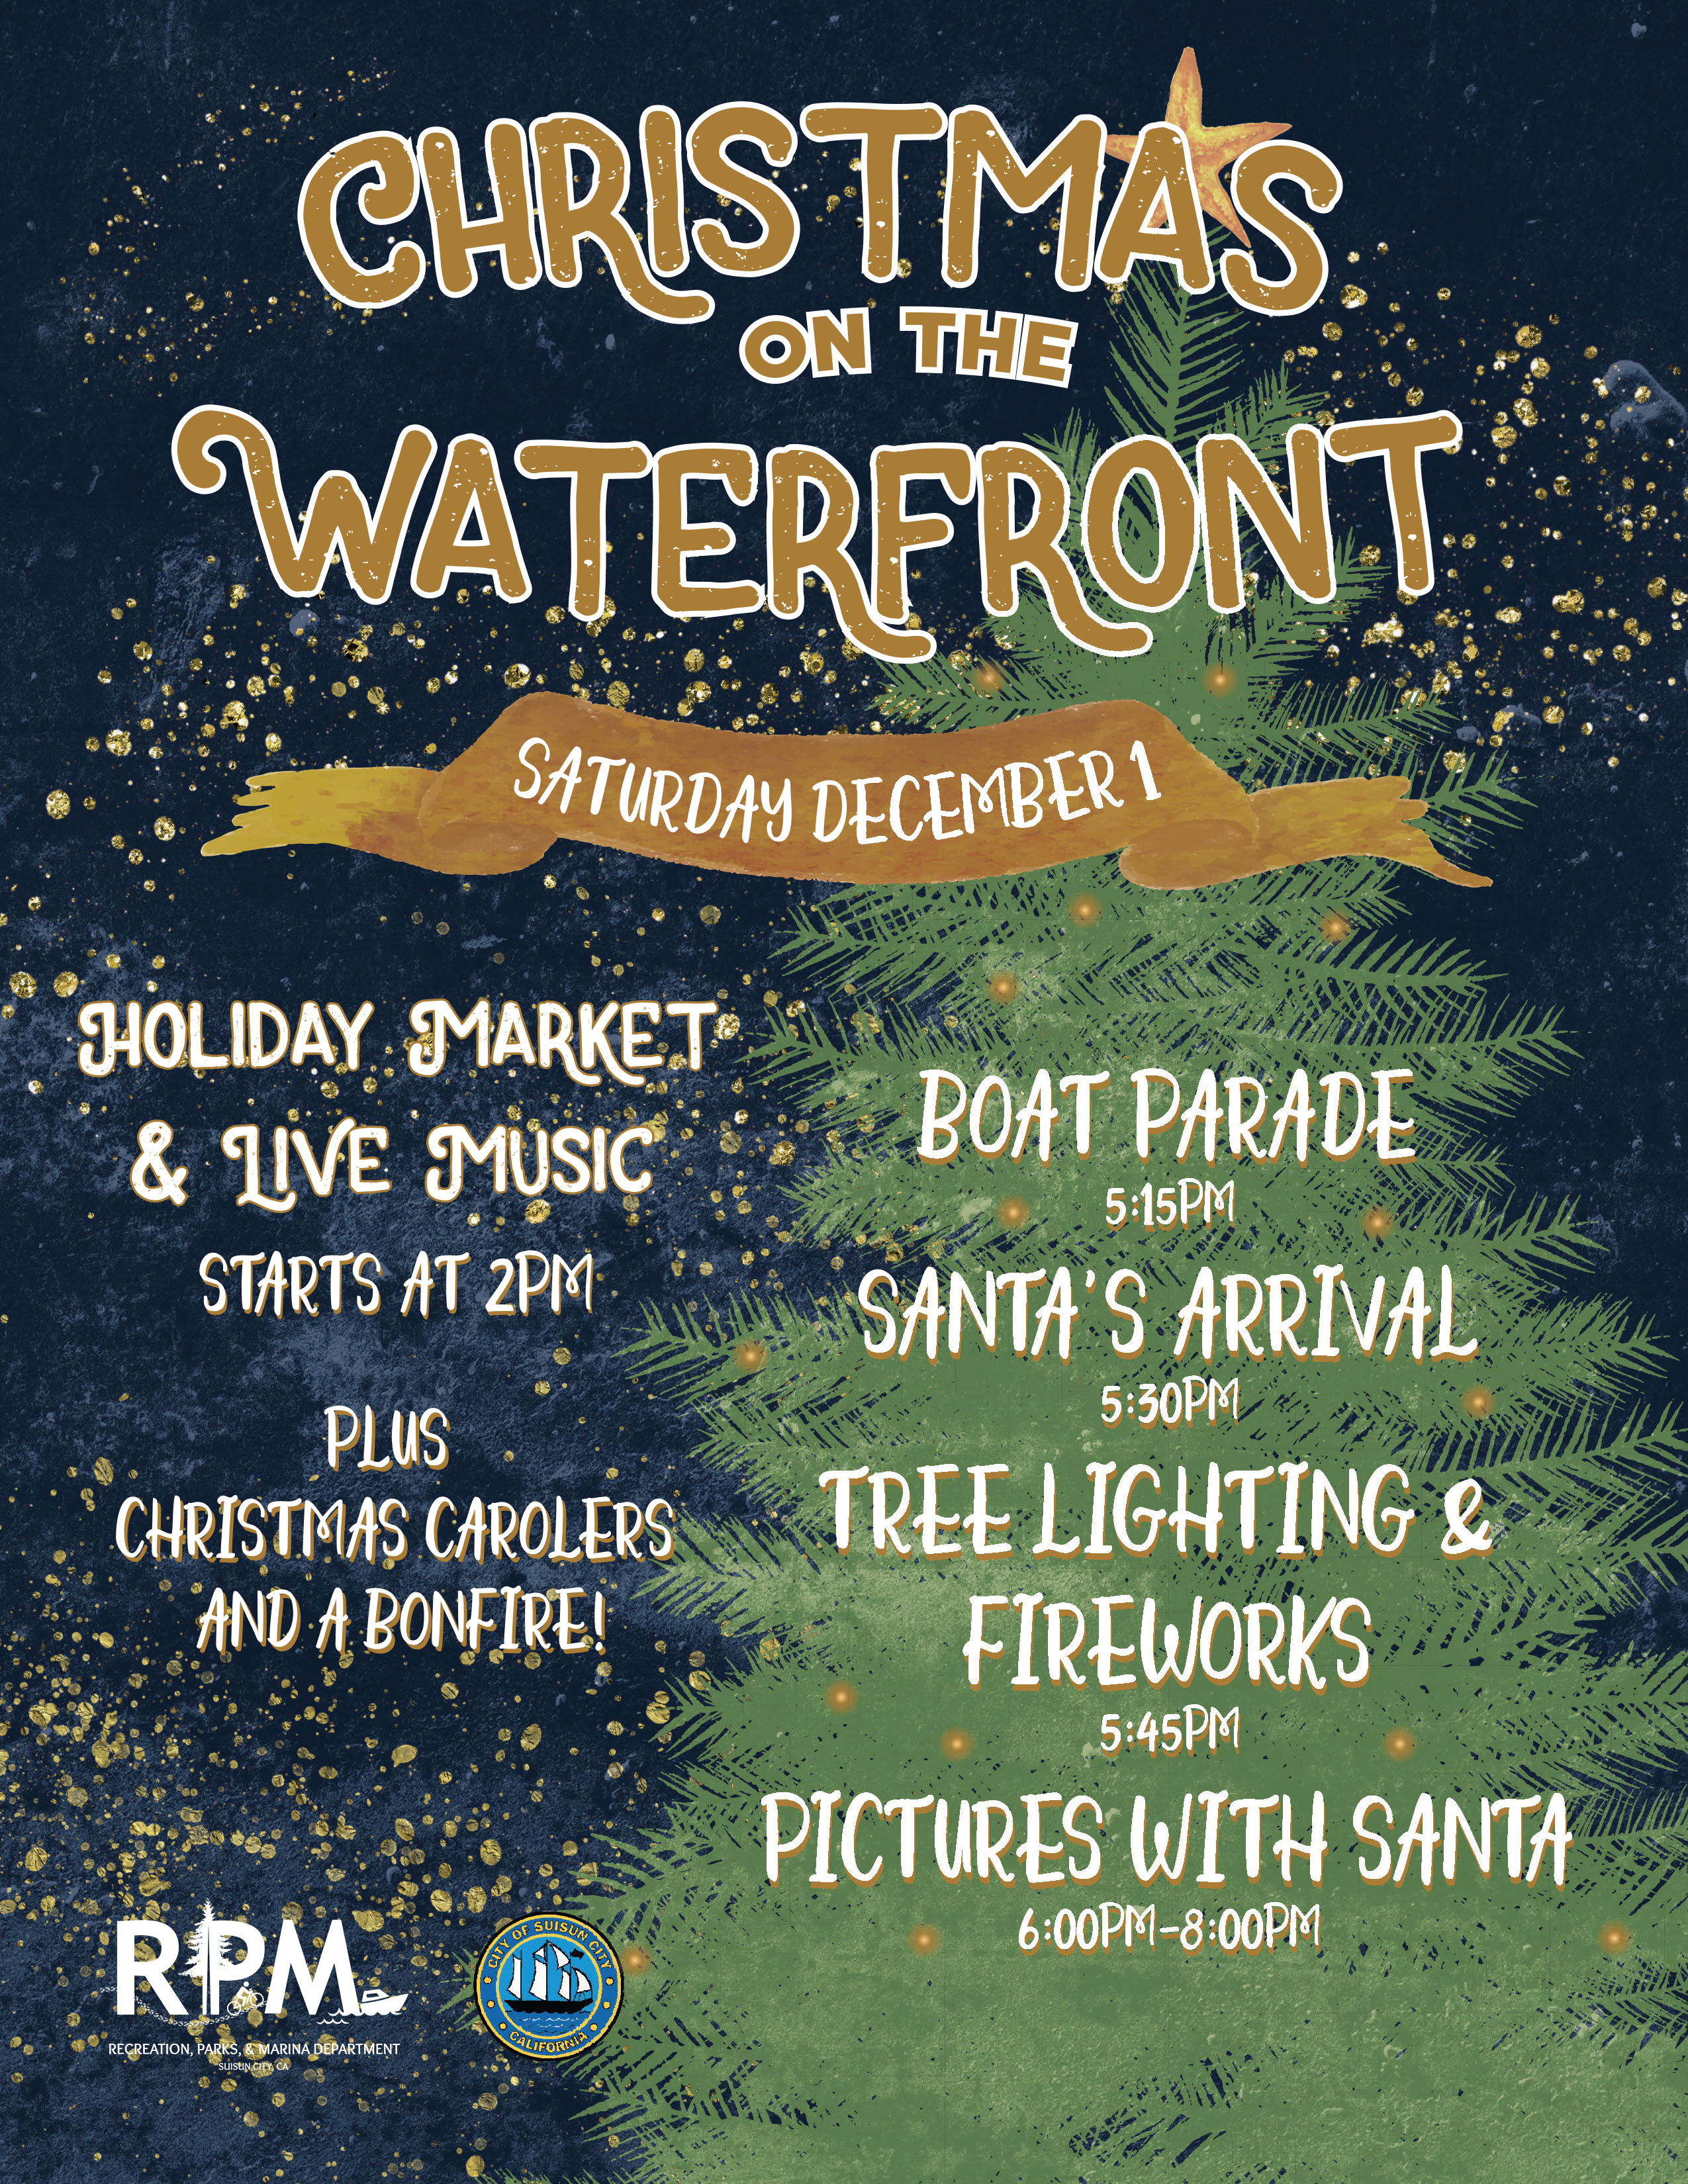 Christmas-on-the-waterfront-2018